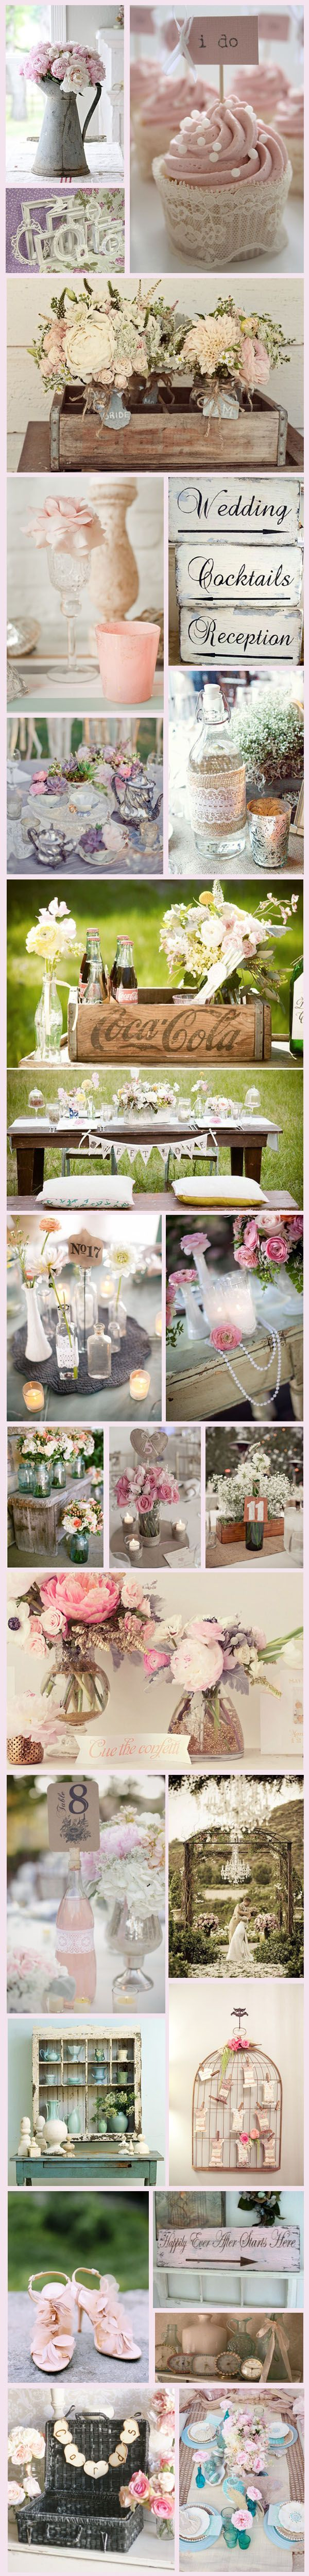 Amazing event designer in Oregon | party ideas | Pinterest | Weiss ...